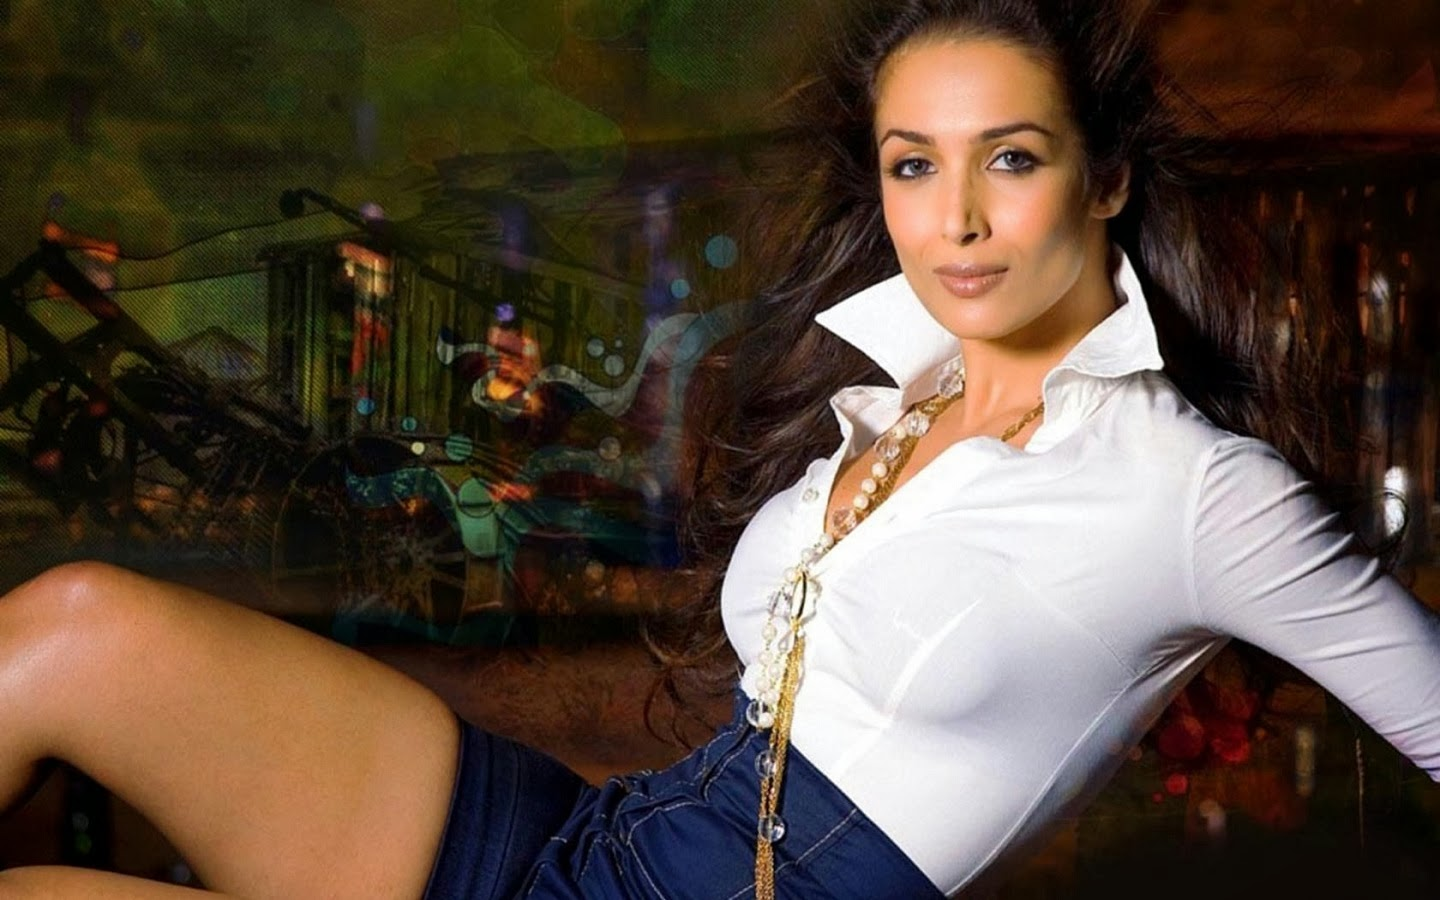 MALAIKA ARORA_WALLSTOWN_IN_BOLLYWOOD ACTRESS